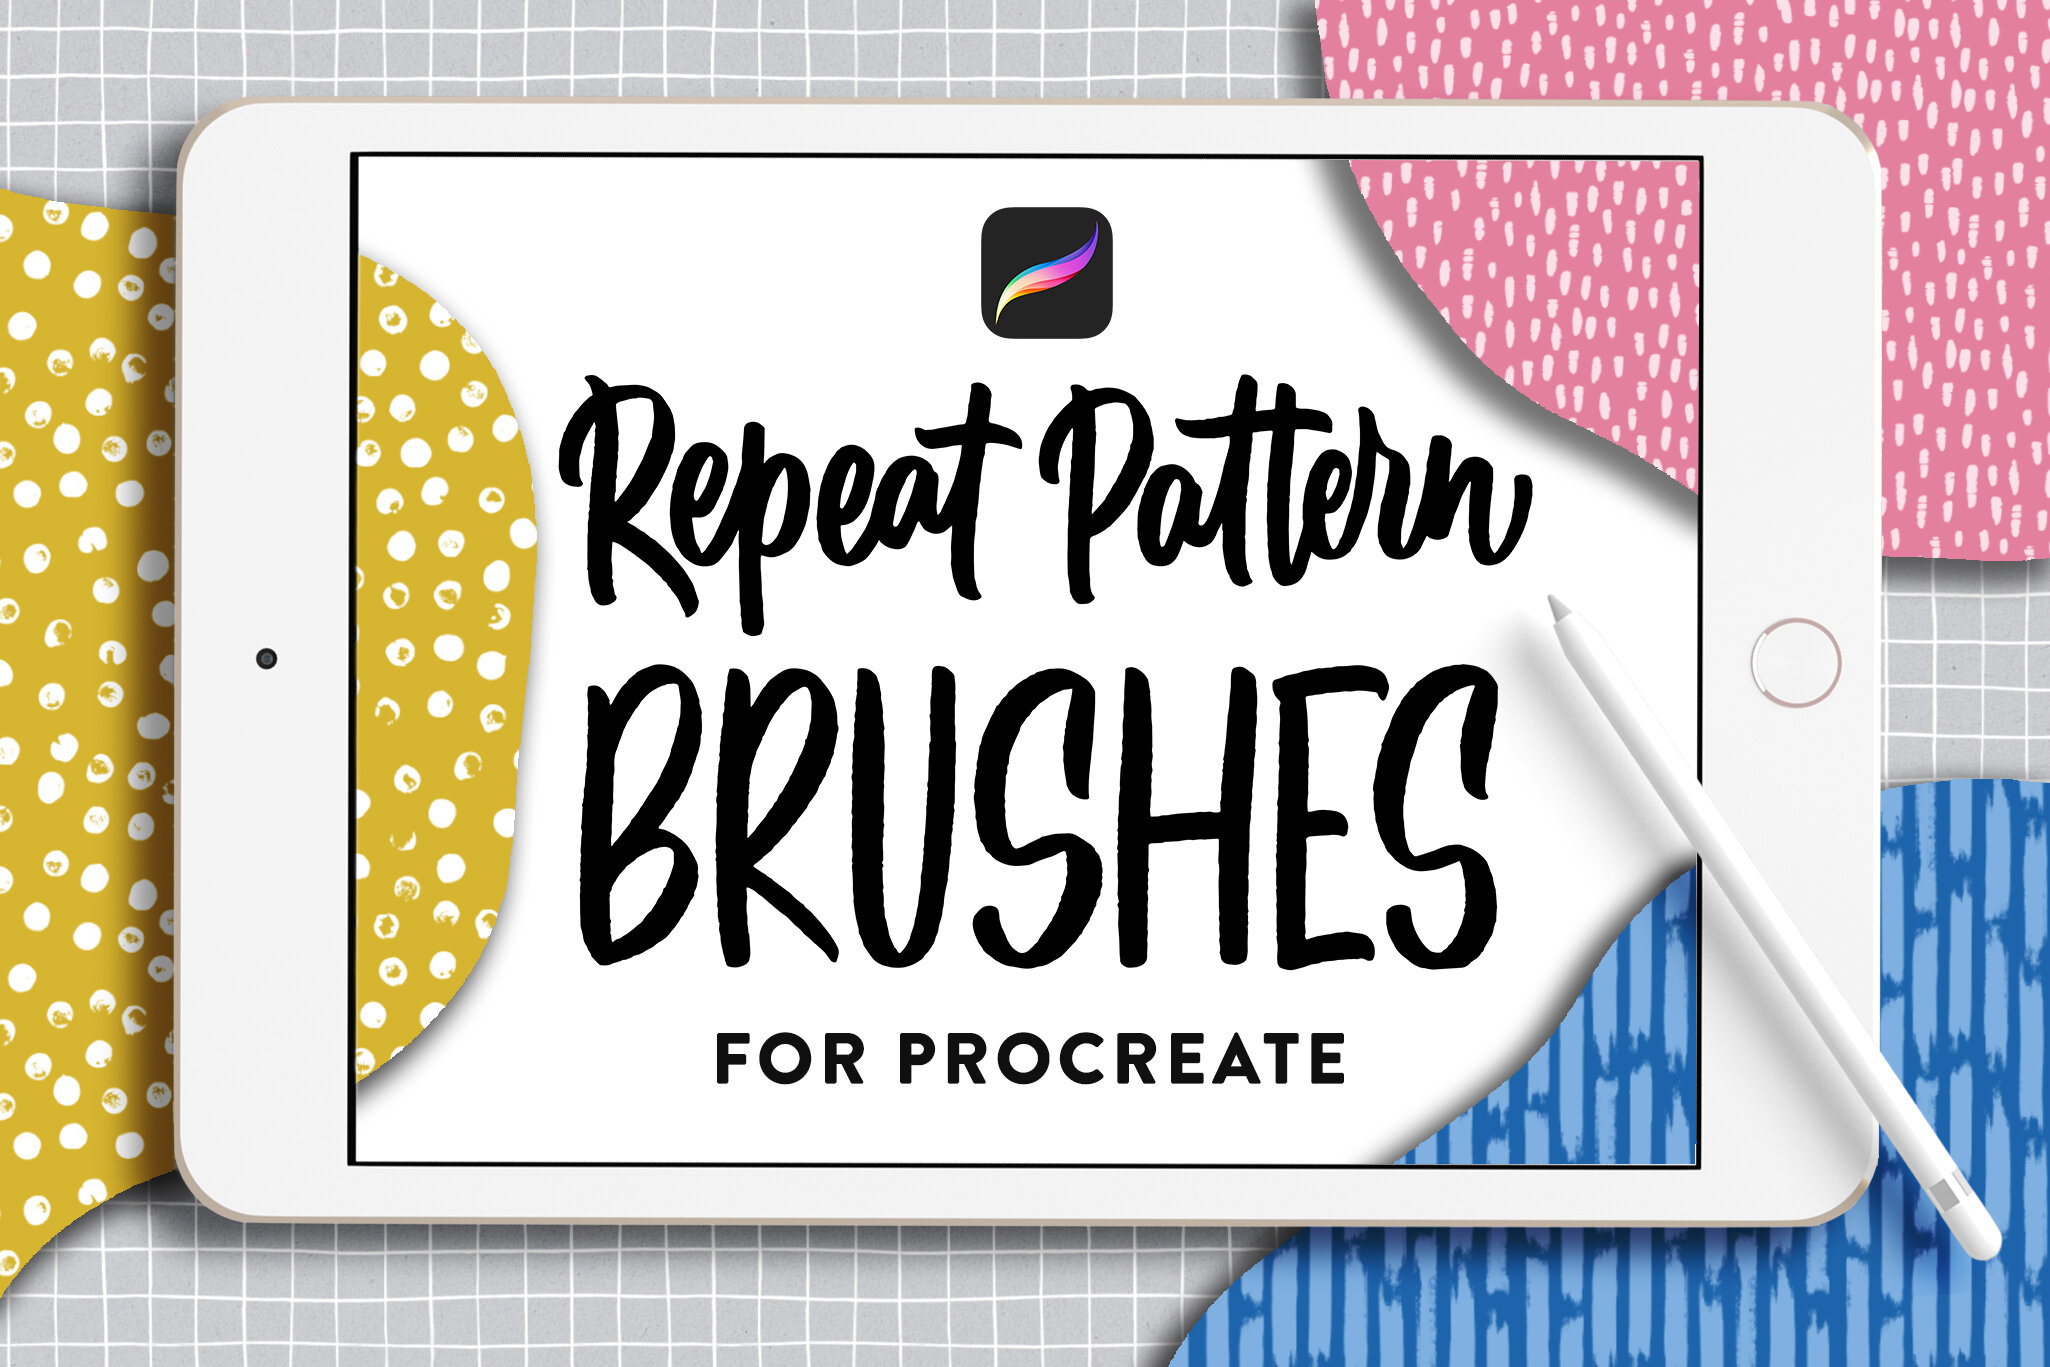 Repeat Pattern Brushes for Procreate by Type and Graphics Lab. Download here: https://crmrkt.com/JpVRmM